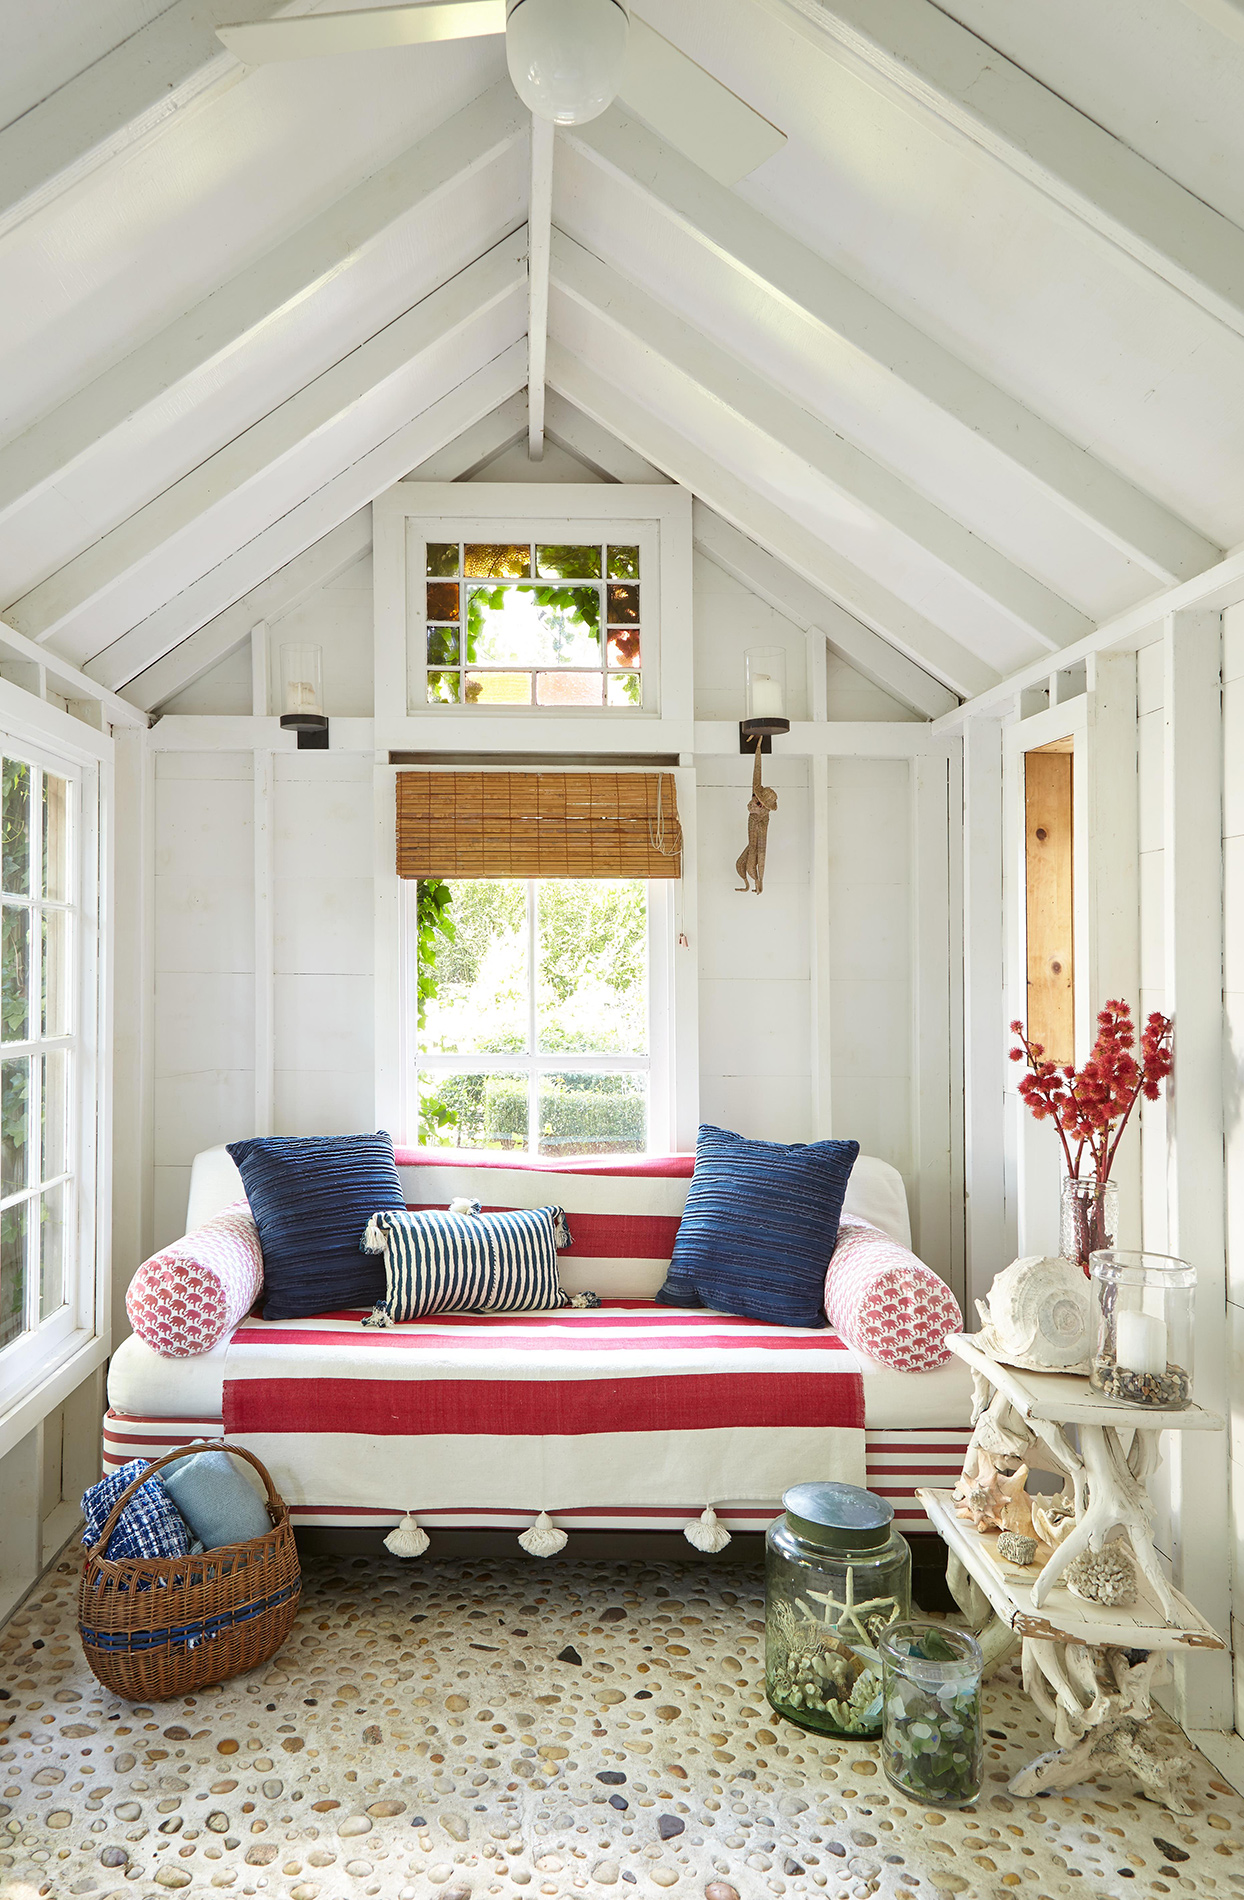 vaulted cottage room with red and blue textiles